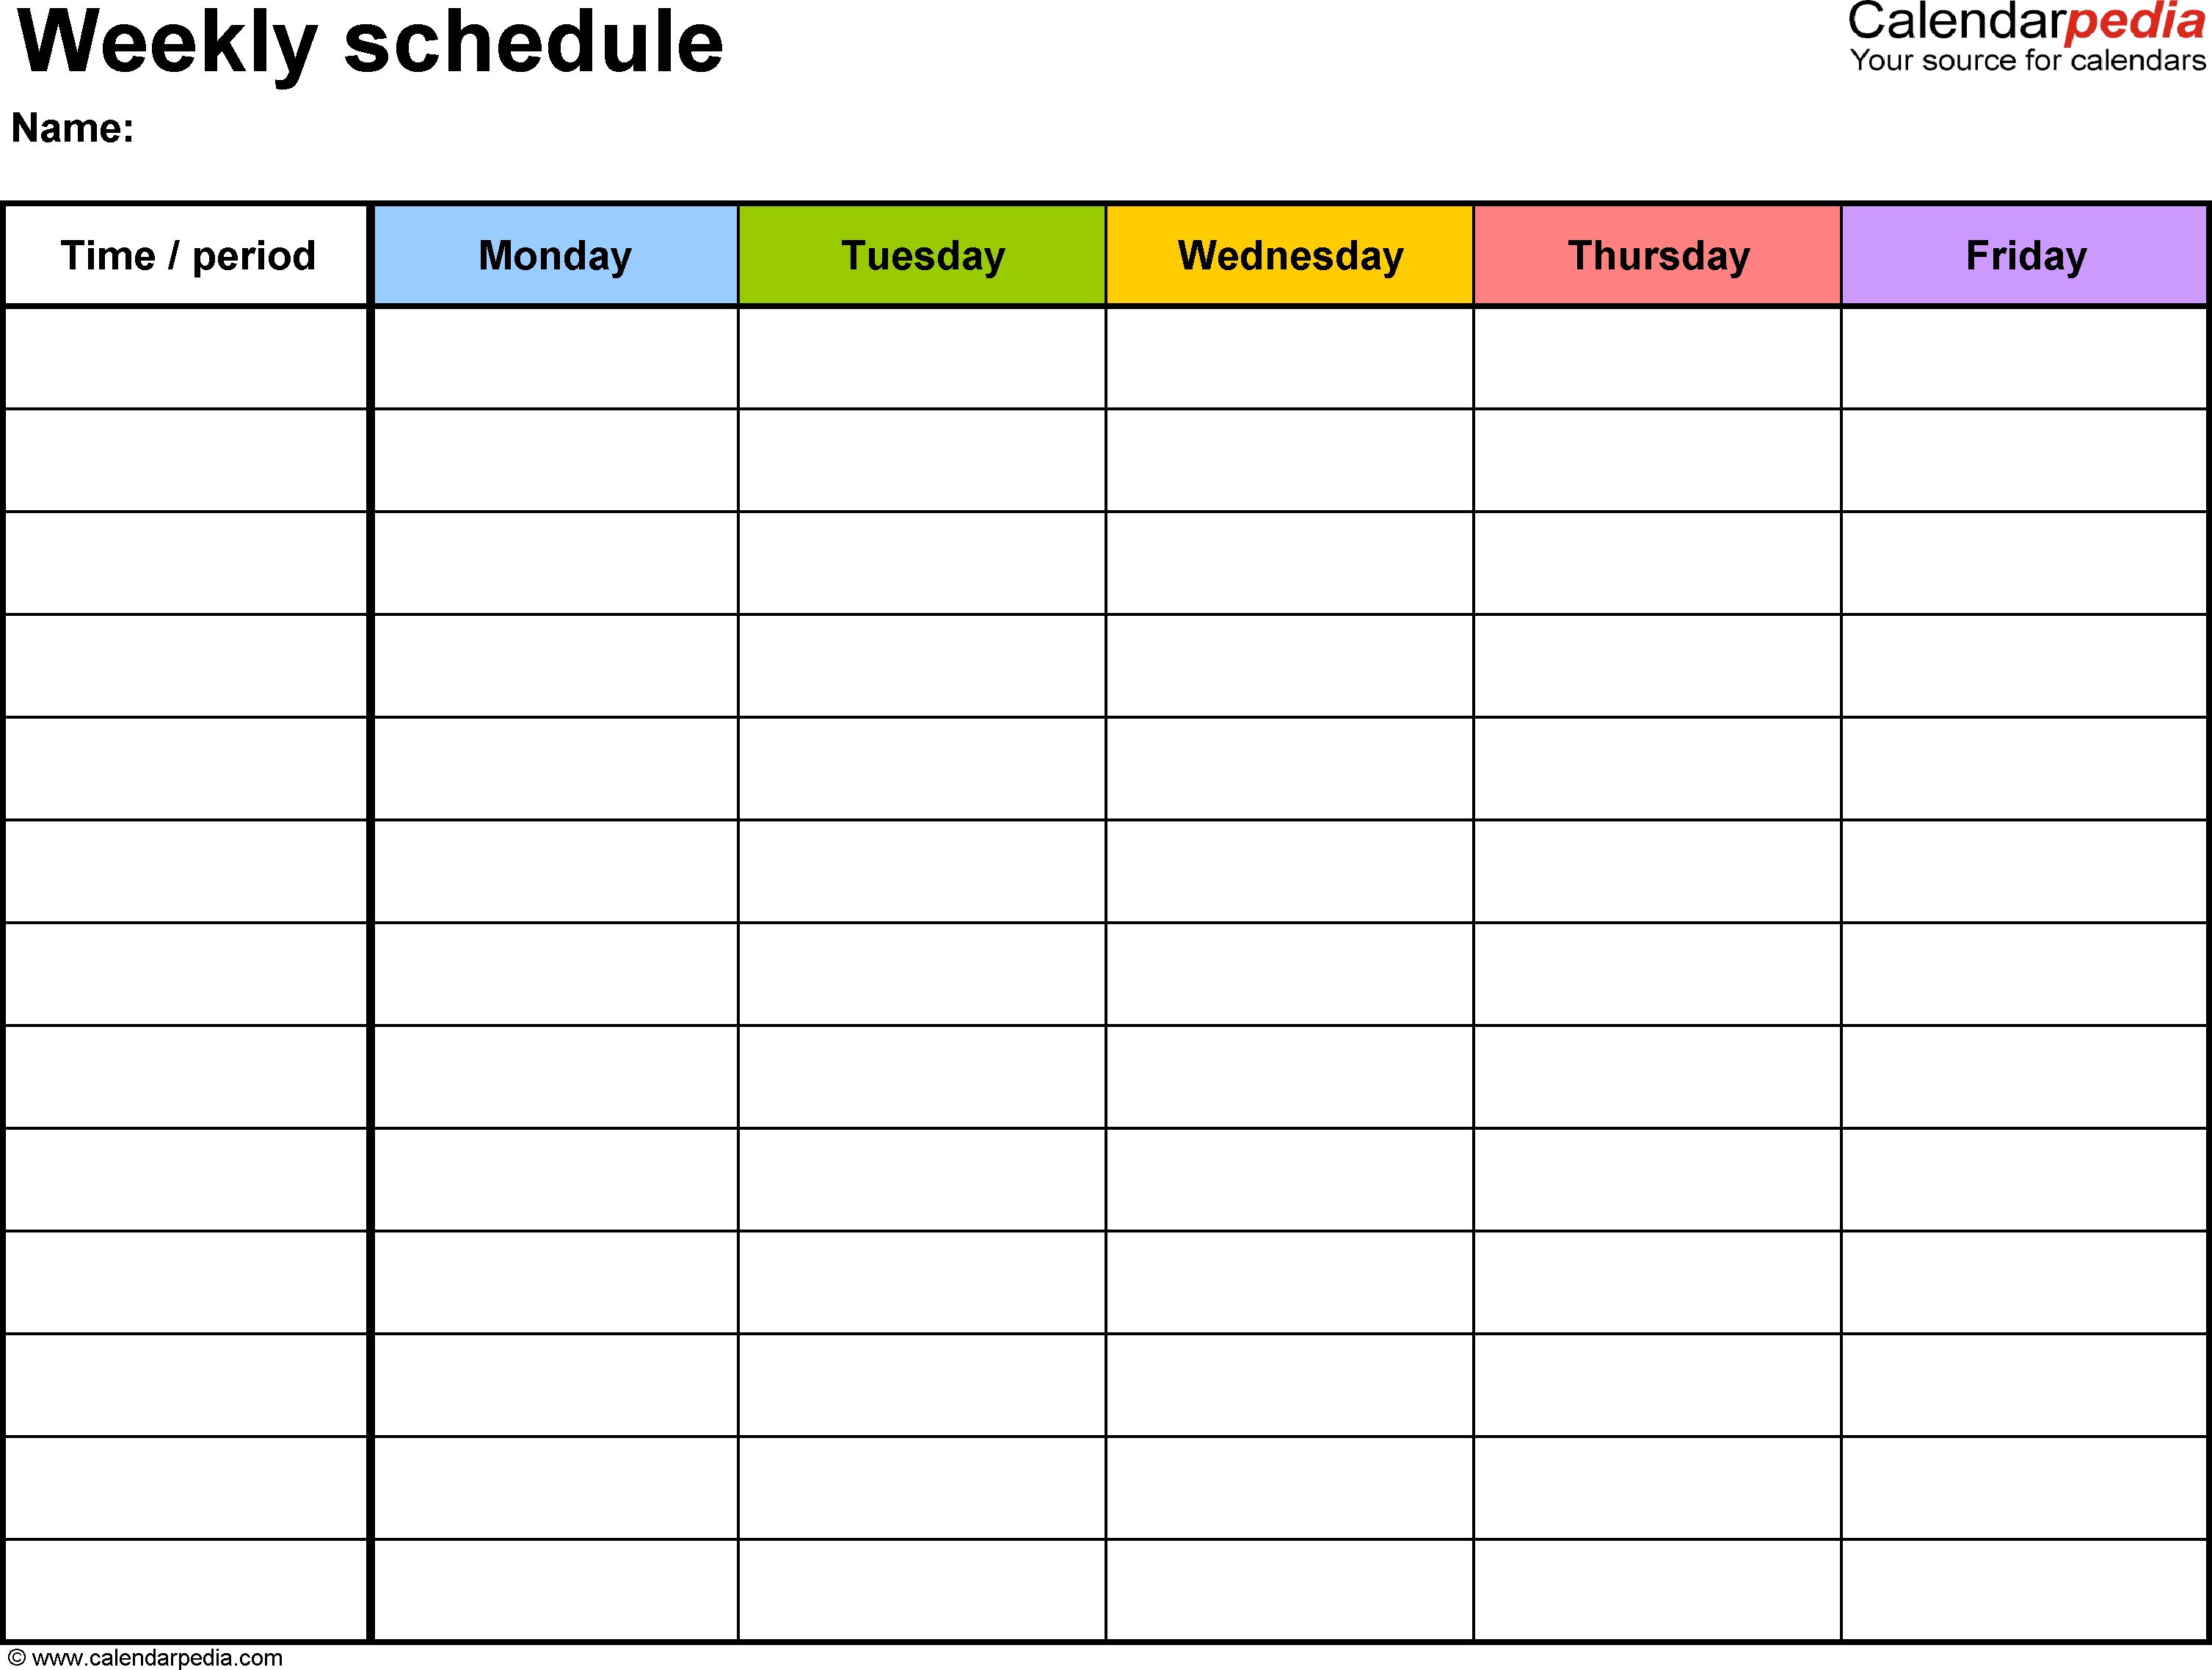 Weekly Calendar Template With Times - Colona.rsd7 pertaining to Time Slot Template Schedule Excel